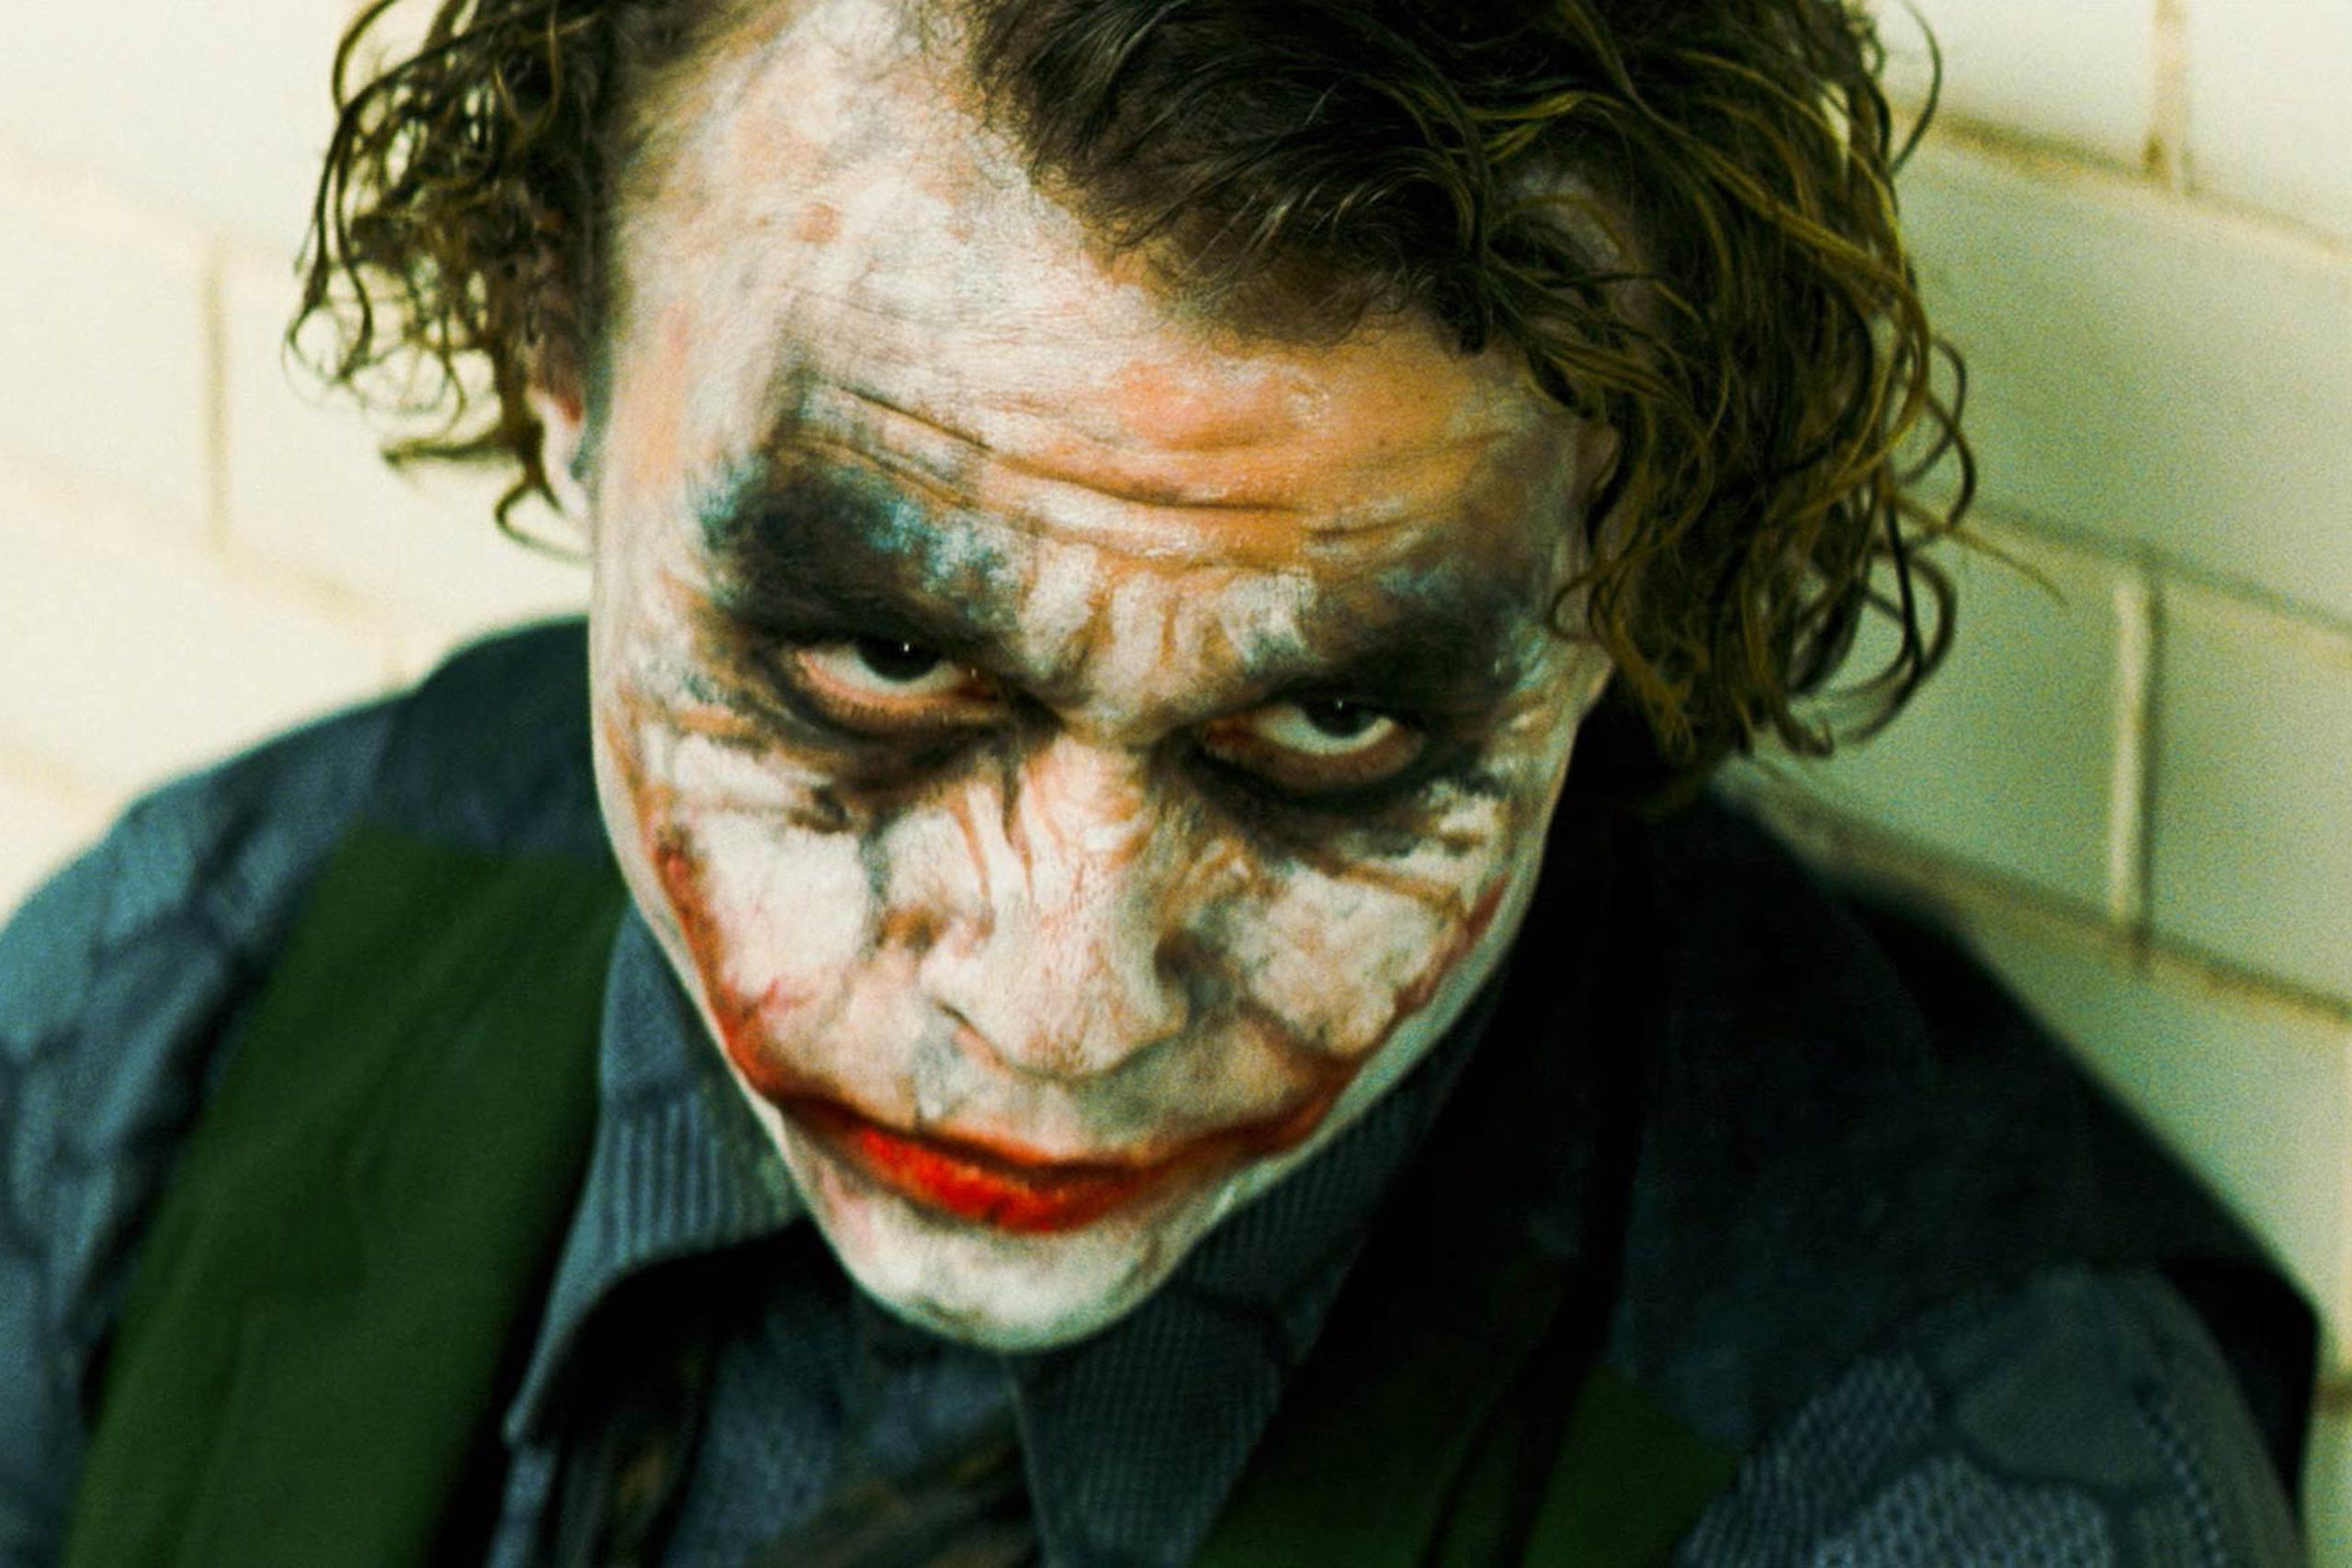 <strong><i>The Dark Knight</i></strong> In Christopher Nolan's 2008 sequel to <i>Batman Begins</i>, Christian Bale returns as Batman, this time joined by Heath Ledger as the ultra-creepy villain known as The Joker.